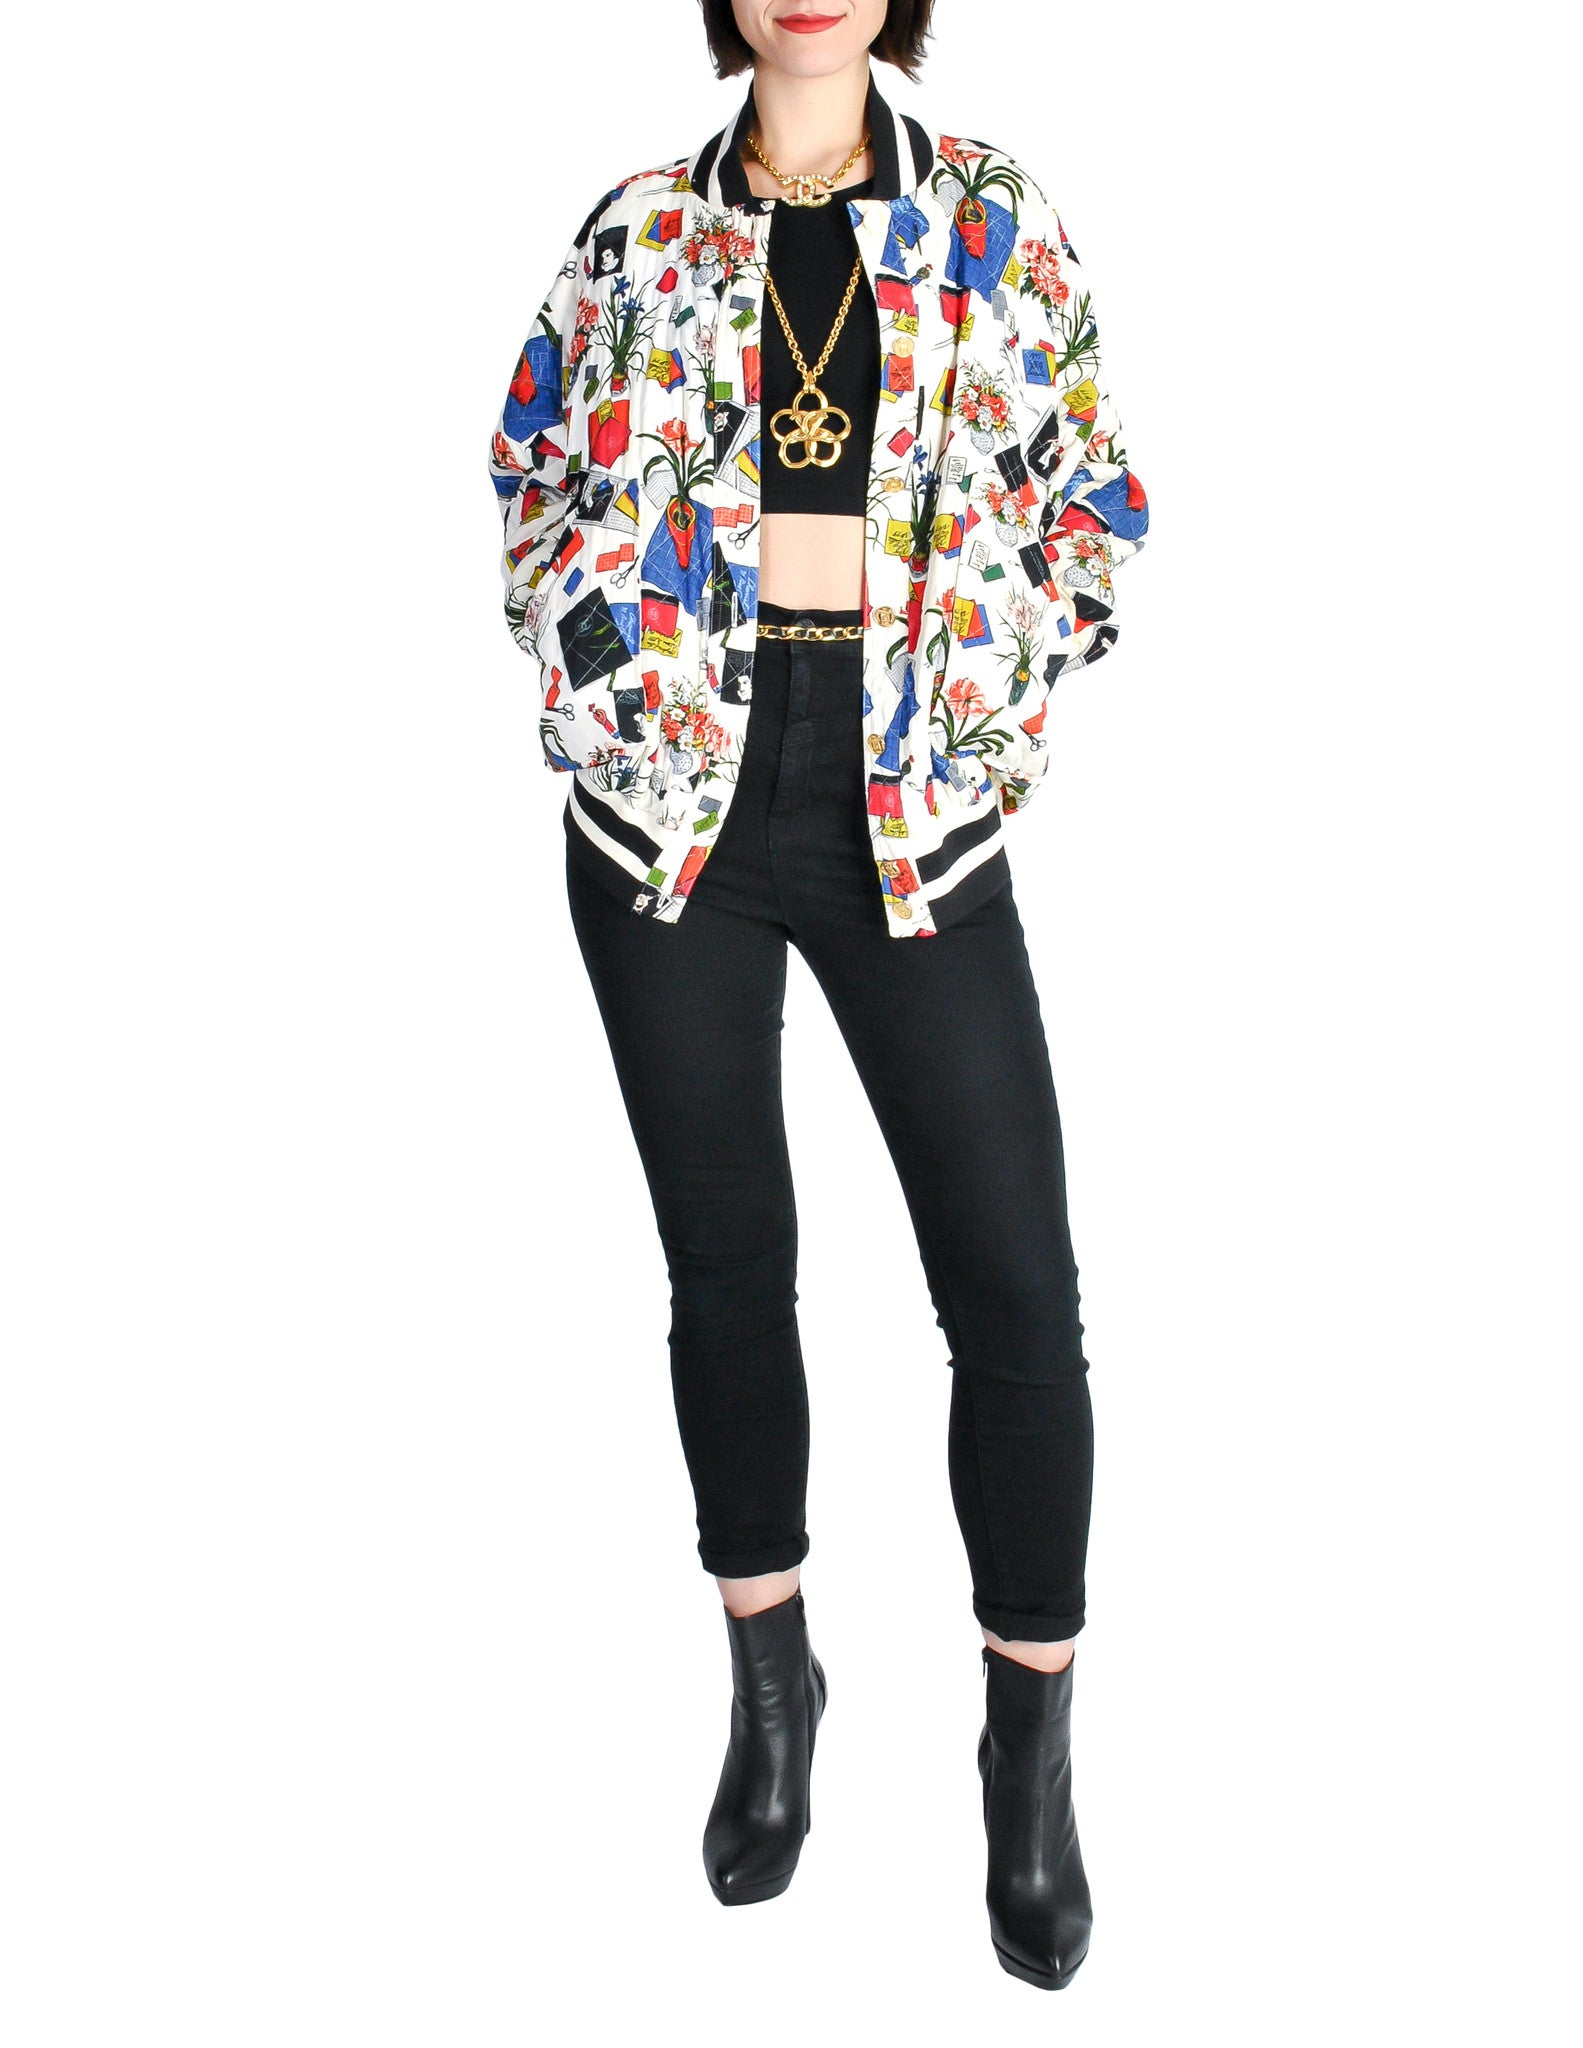 Chanel Vintage Novelty Print Quilted Bomber Jacket - Amarcord Vintage Fashion  - 1